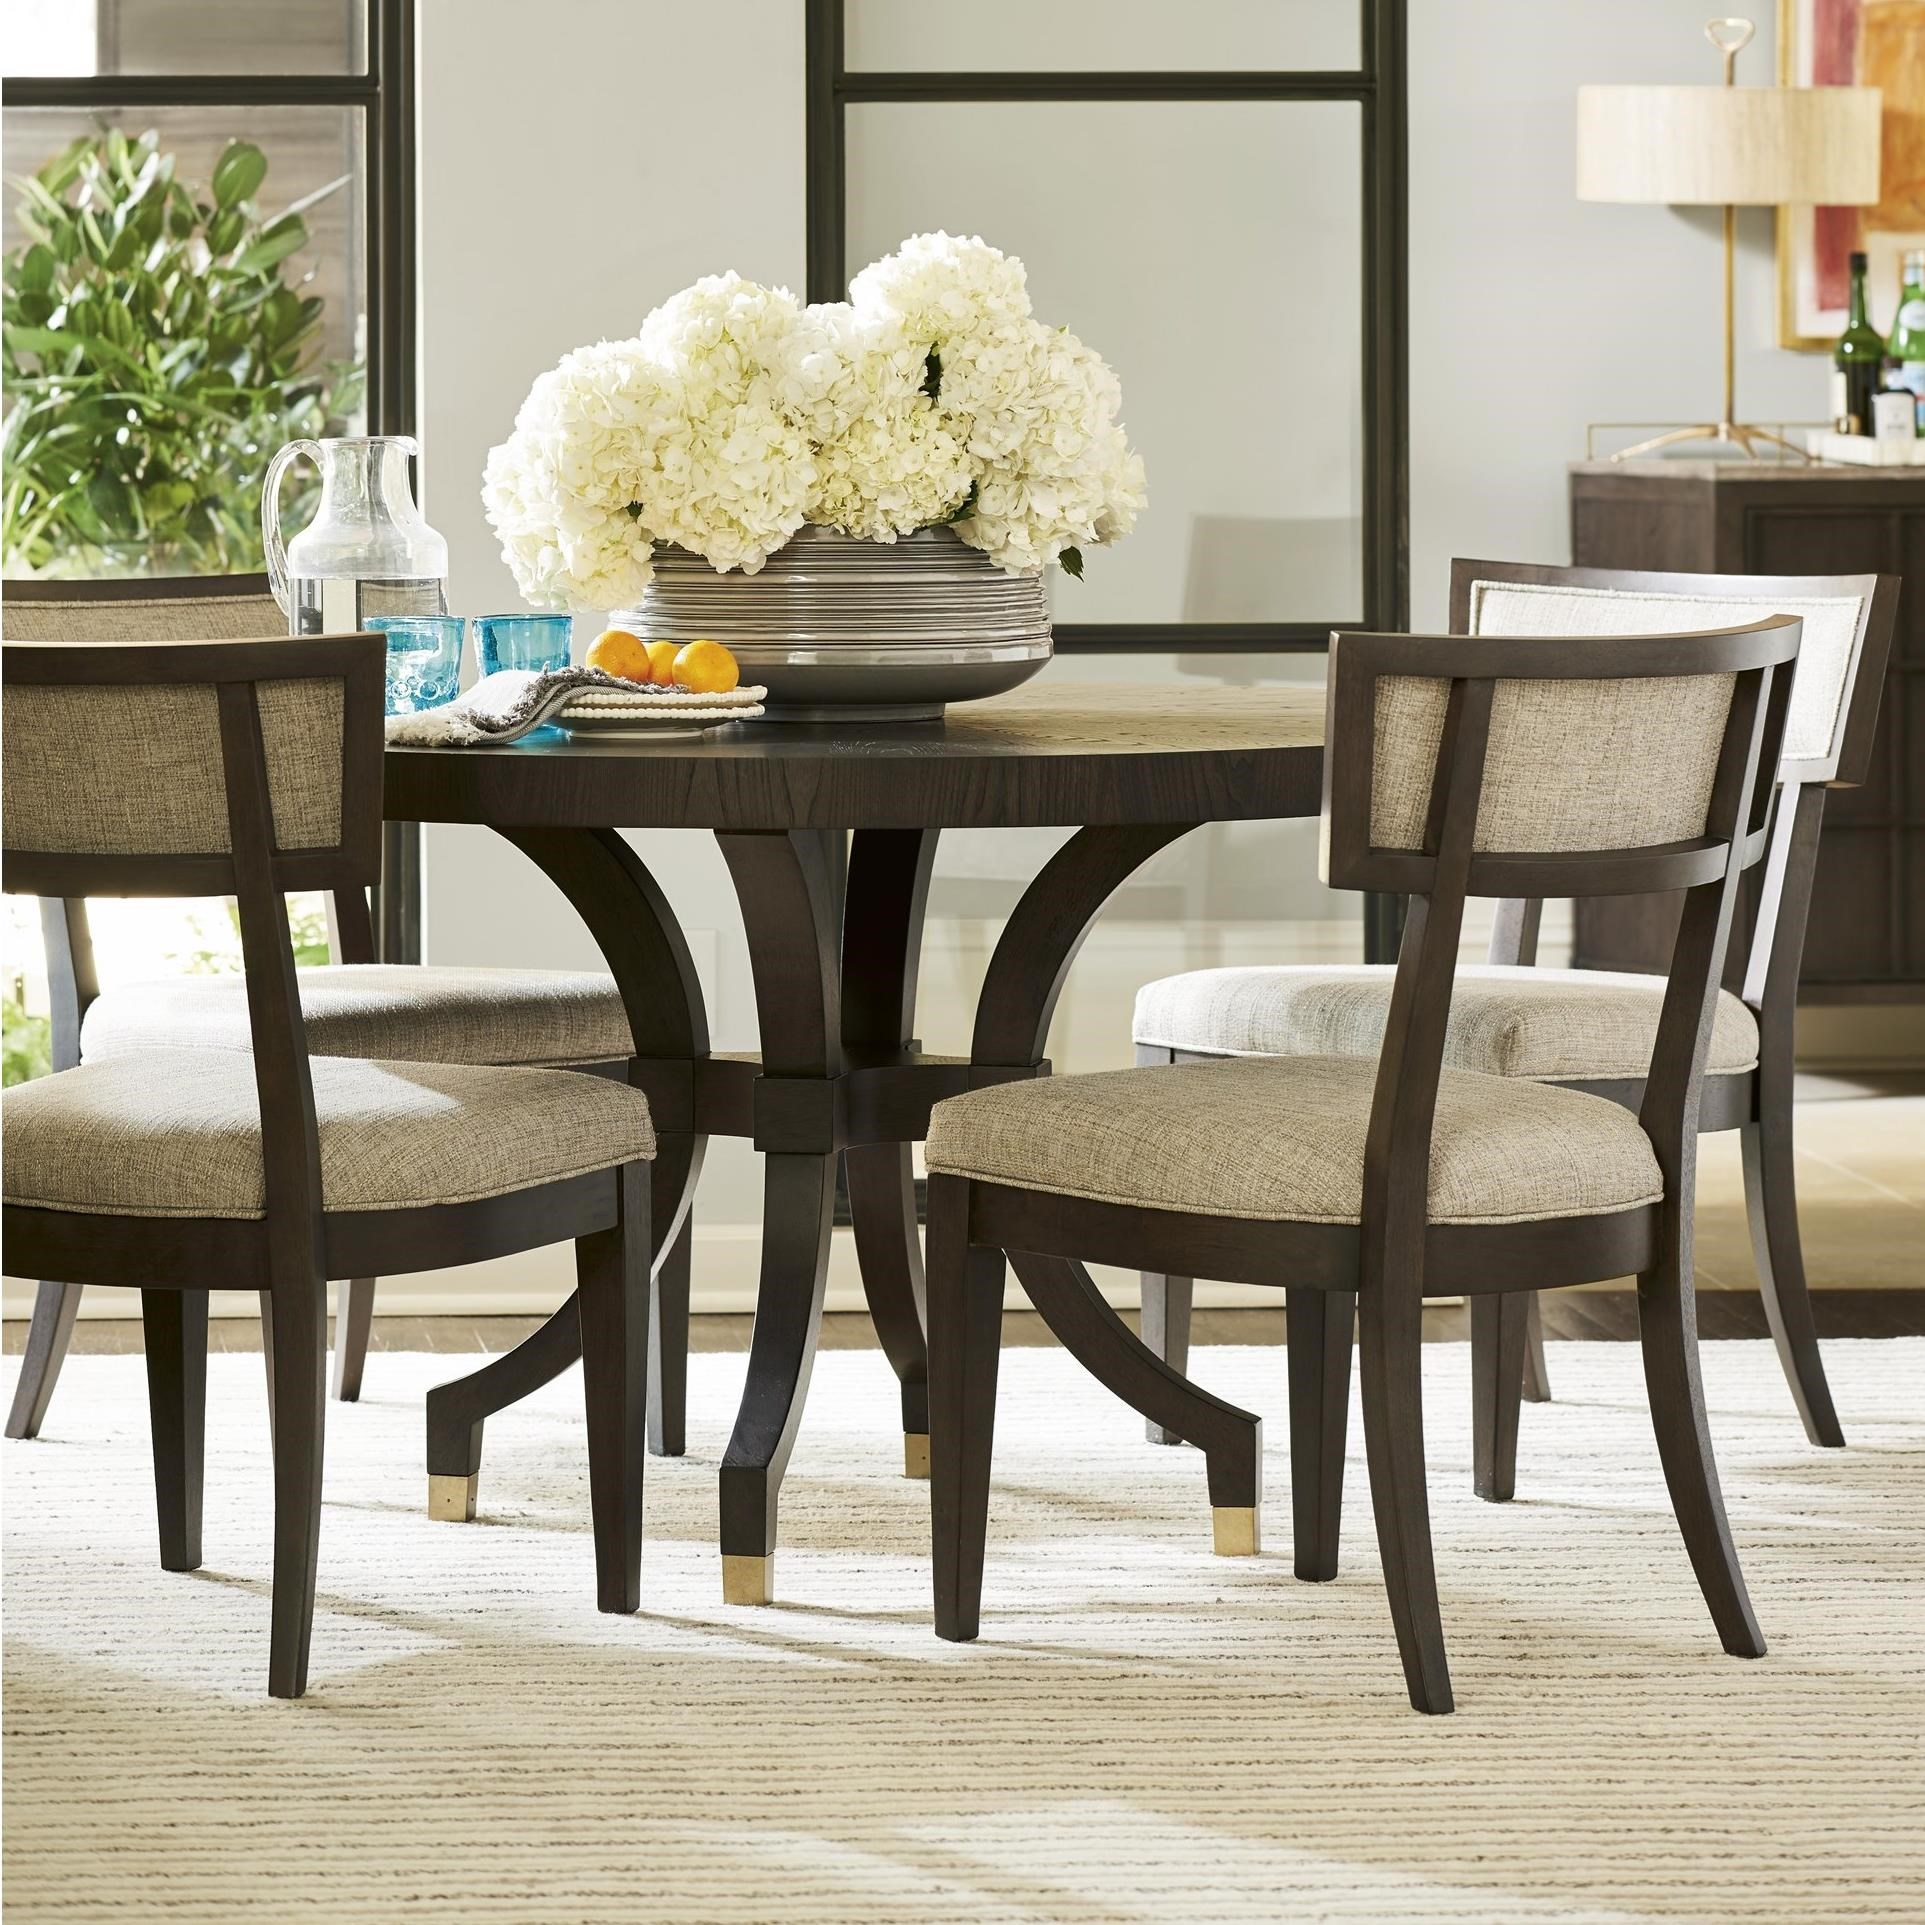 Soliloquy 5 Piece Table and Chair Set by Universal at Baer's Furniture